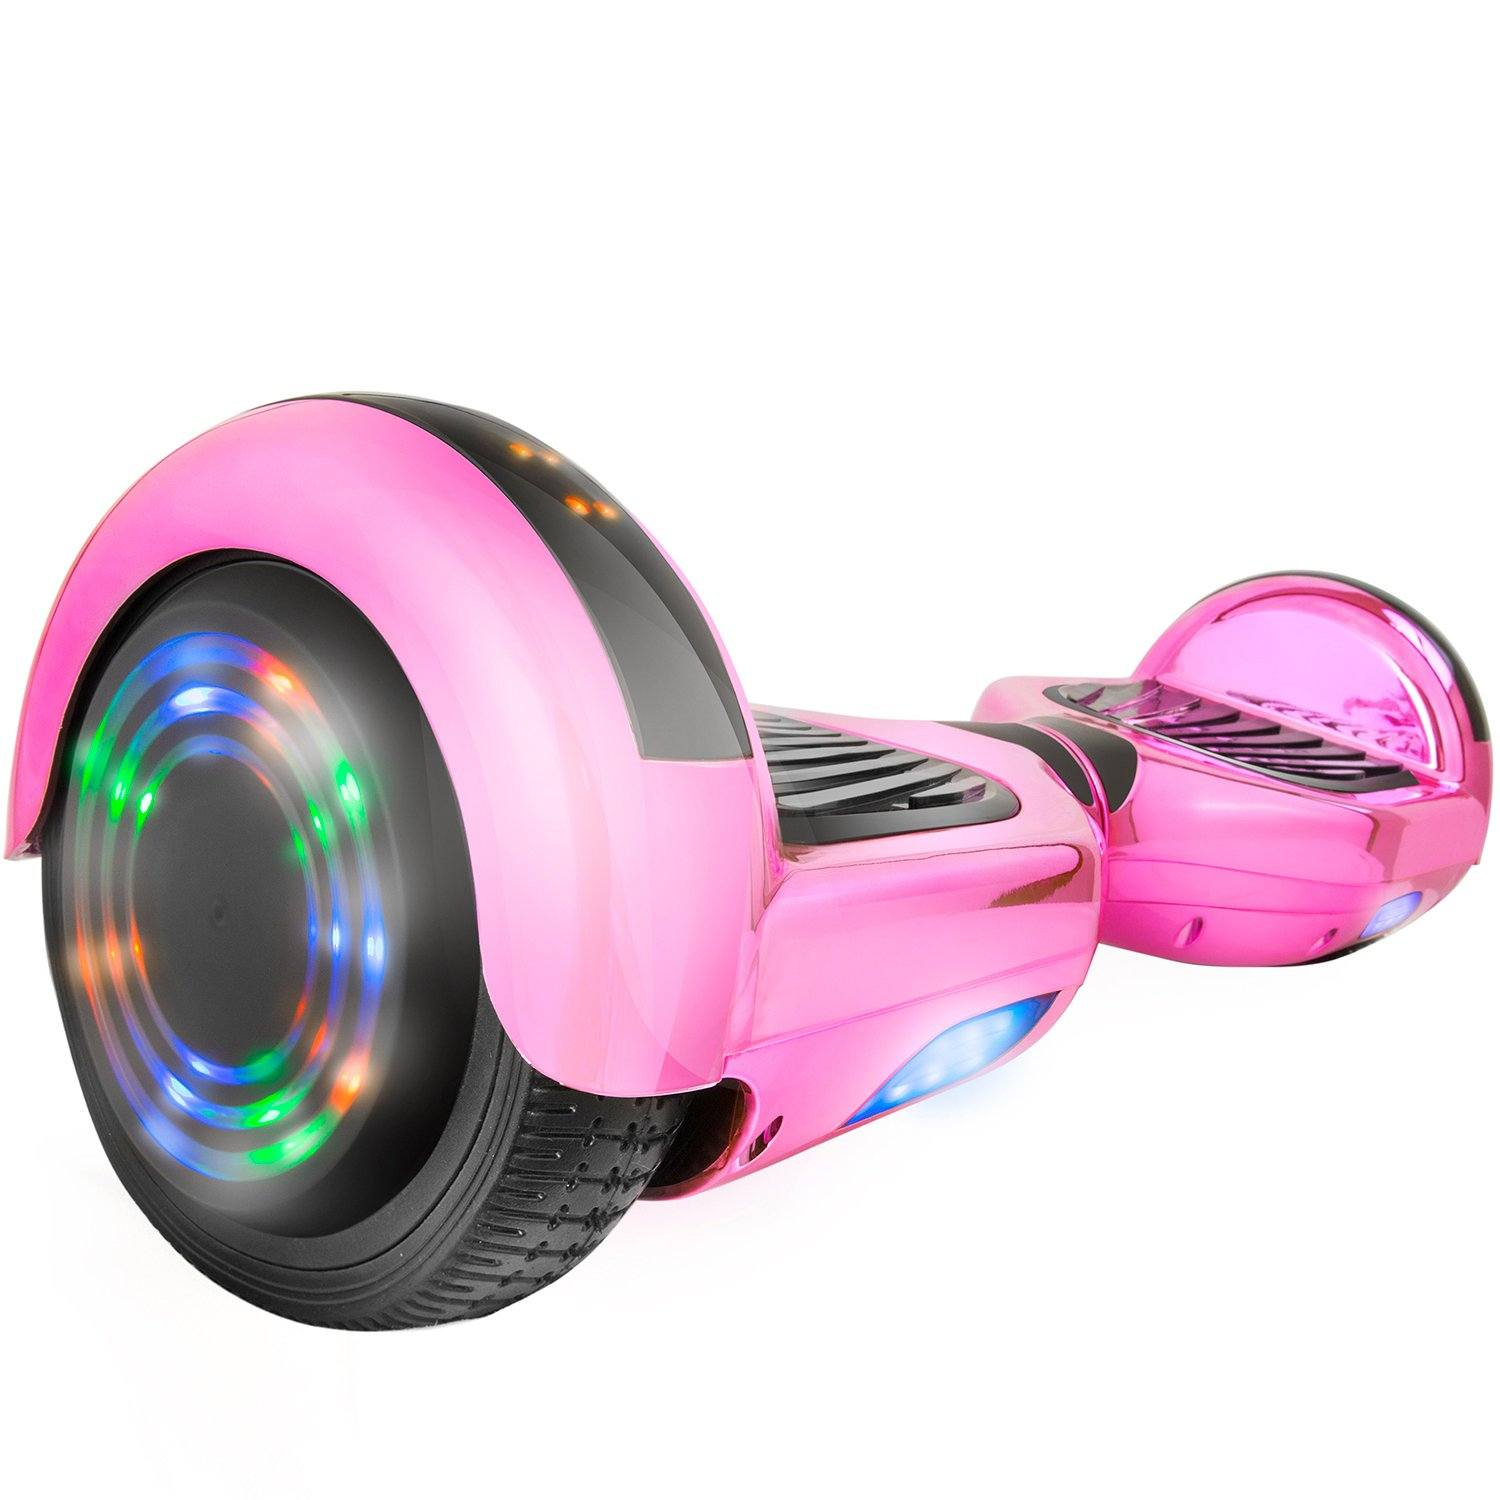 Z1 Plus Pink Hoverboard UL2272 certified with Bluetooth Speaker Free Shipping. - HoverBoard 4sale